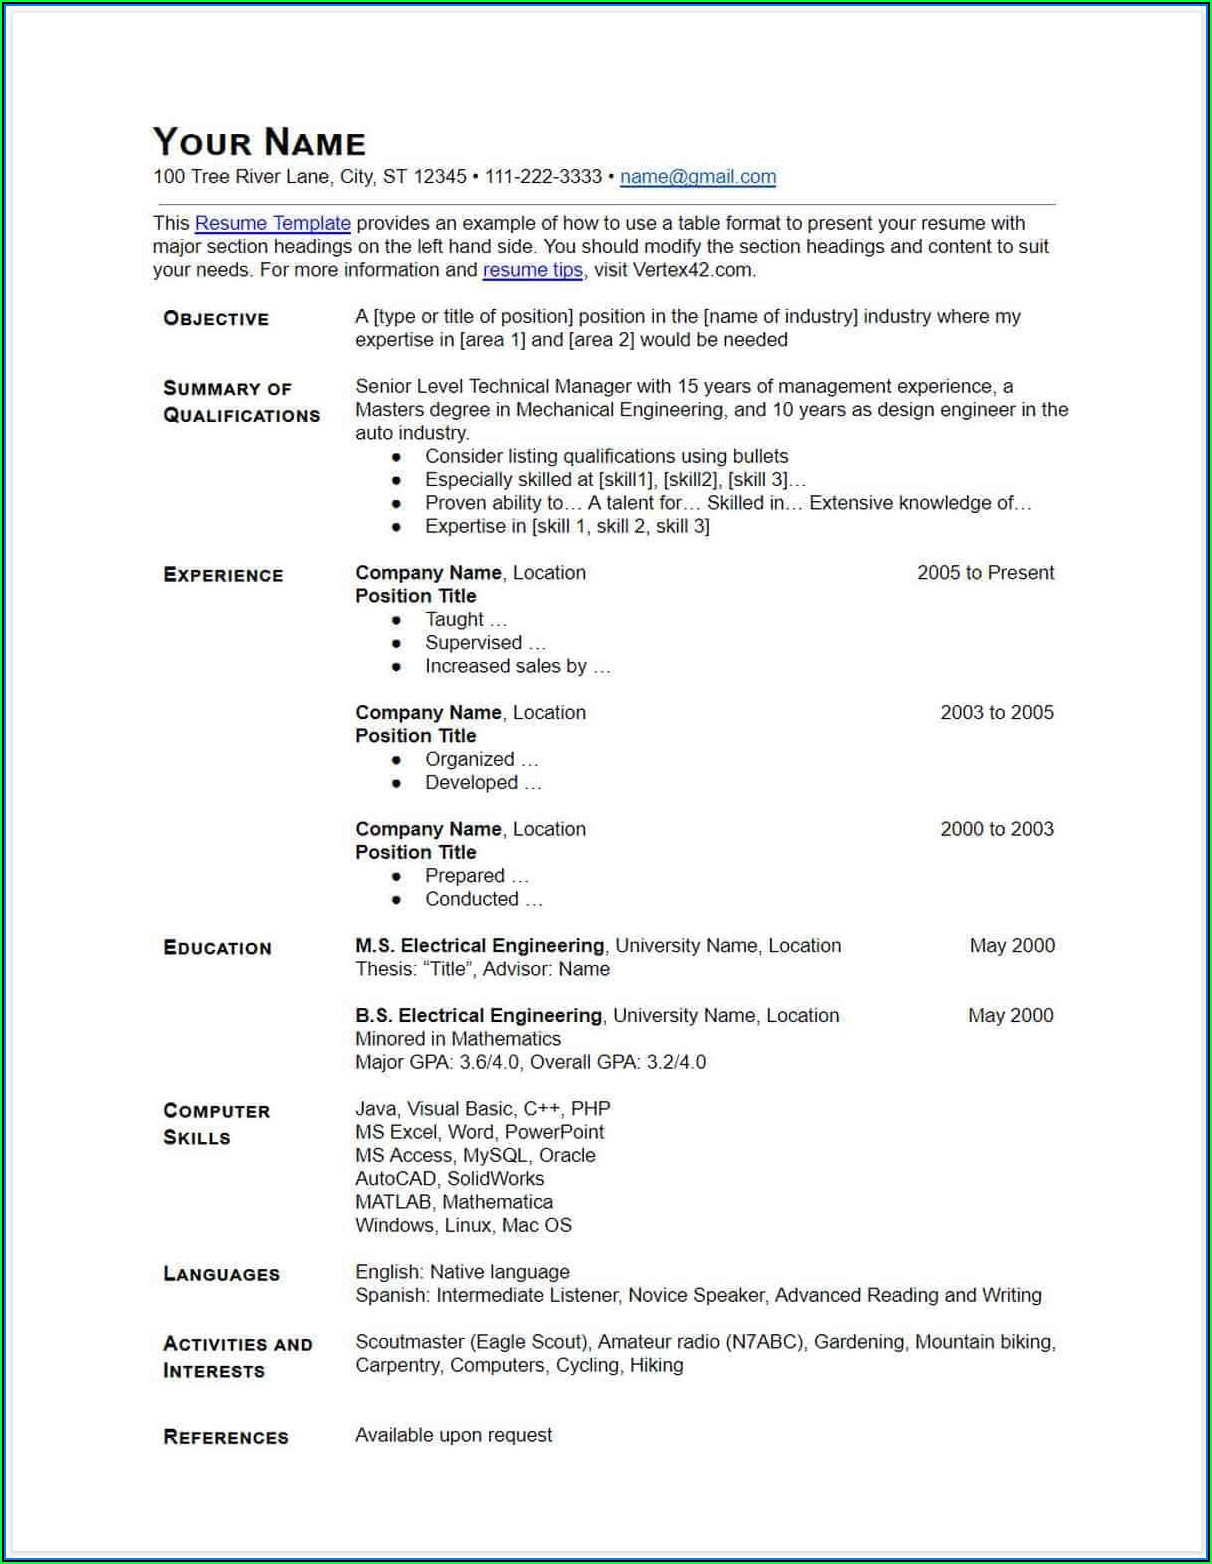 Free Downloadable Resume Templates Google Docs